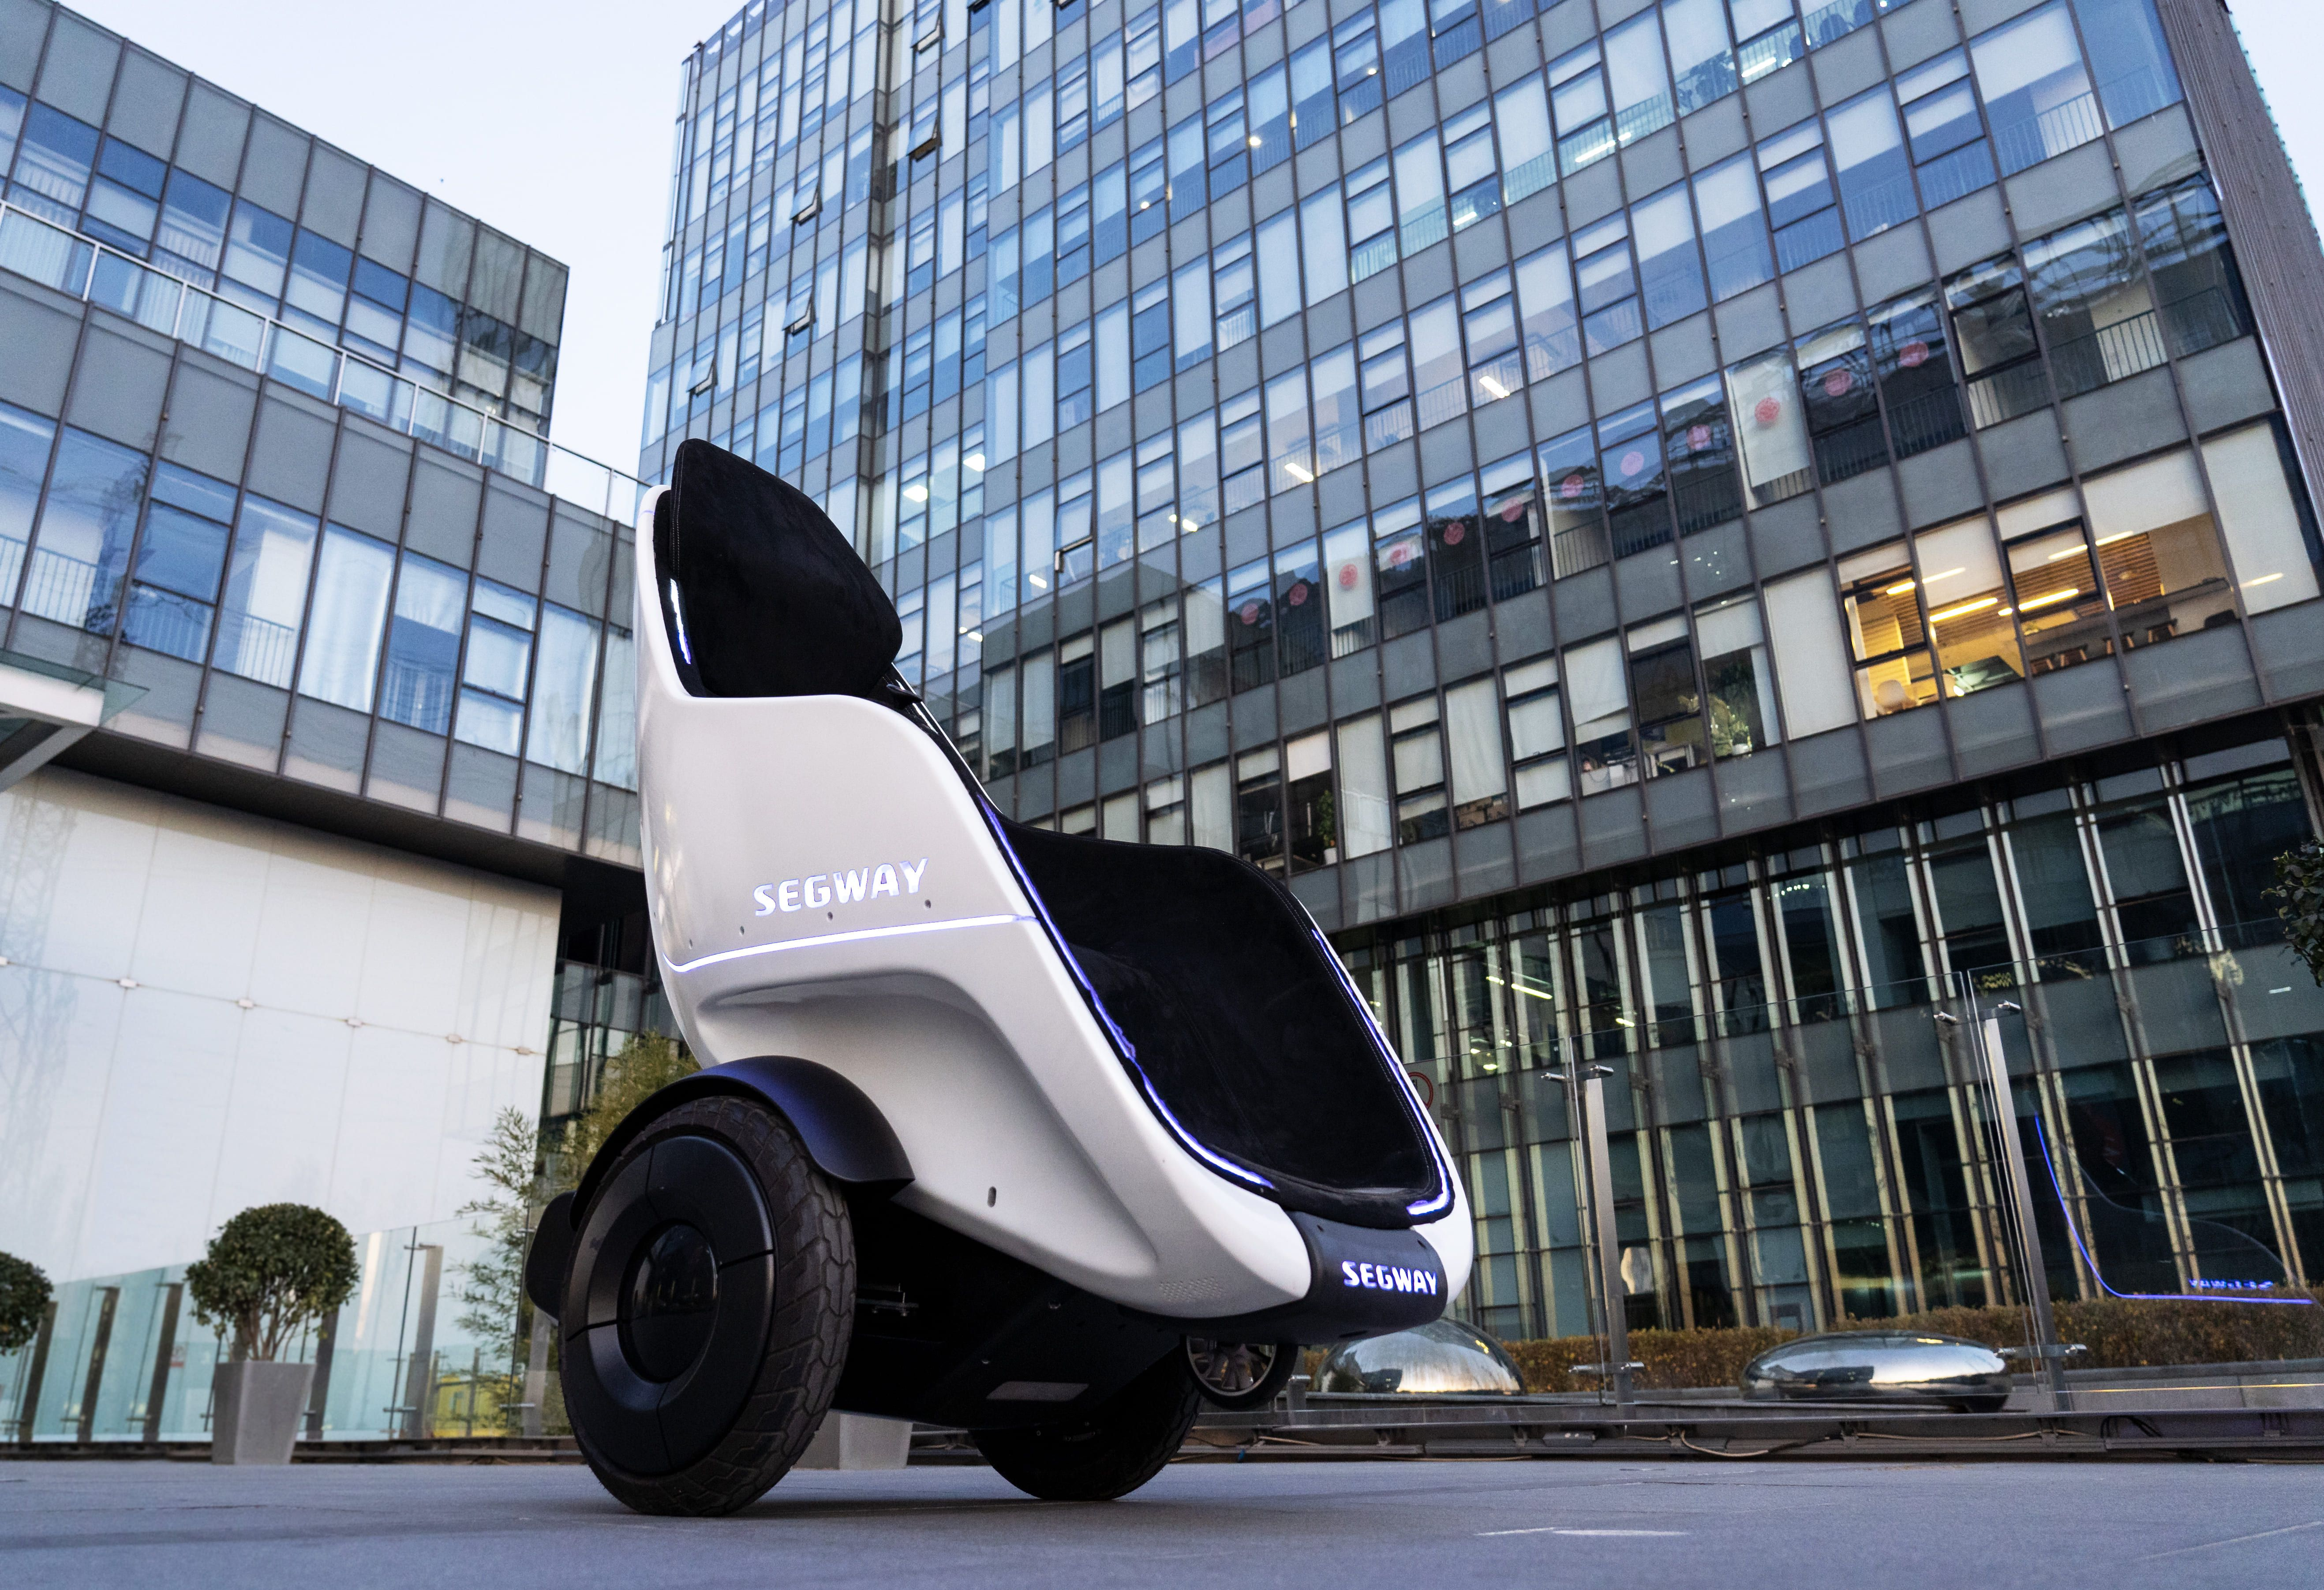 Segway's New Egg-Shaped S-Pod Is a Futuristic People Mover